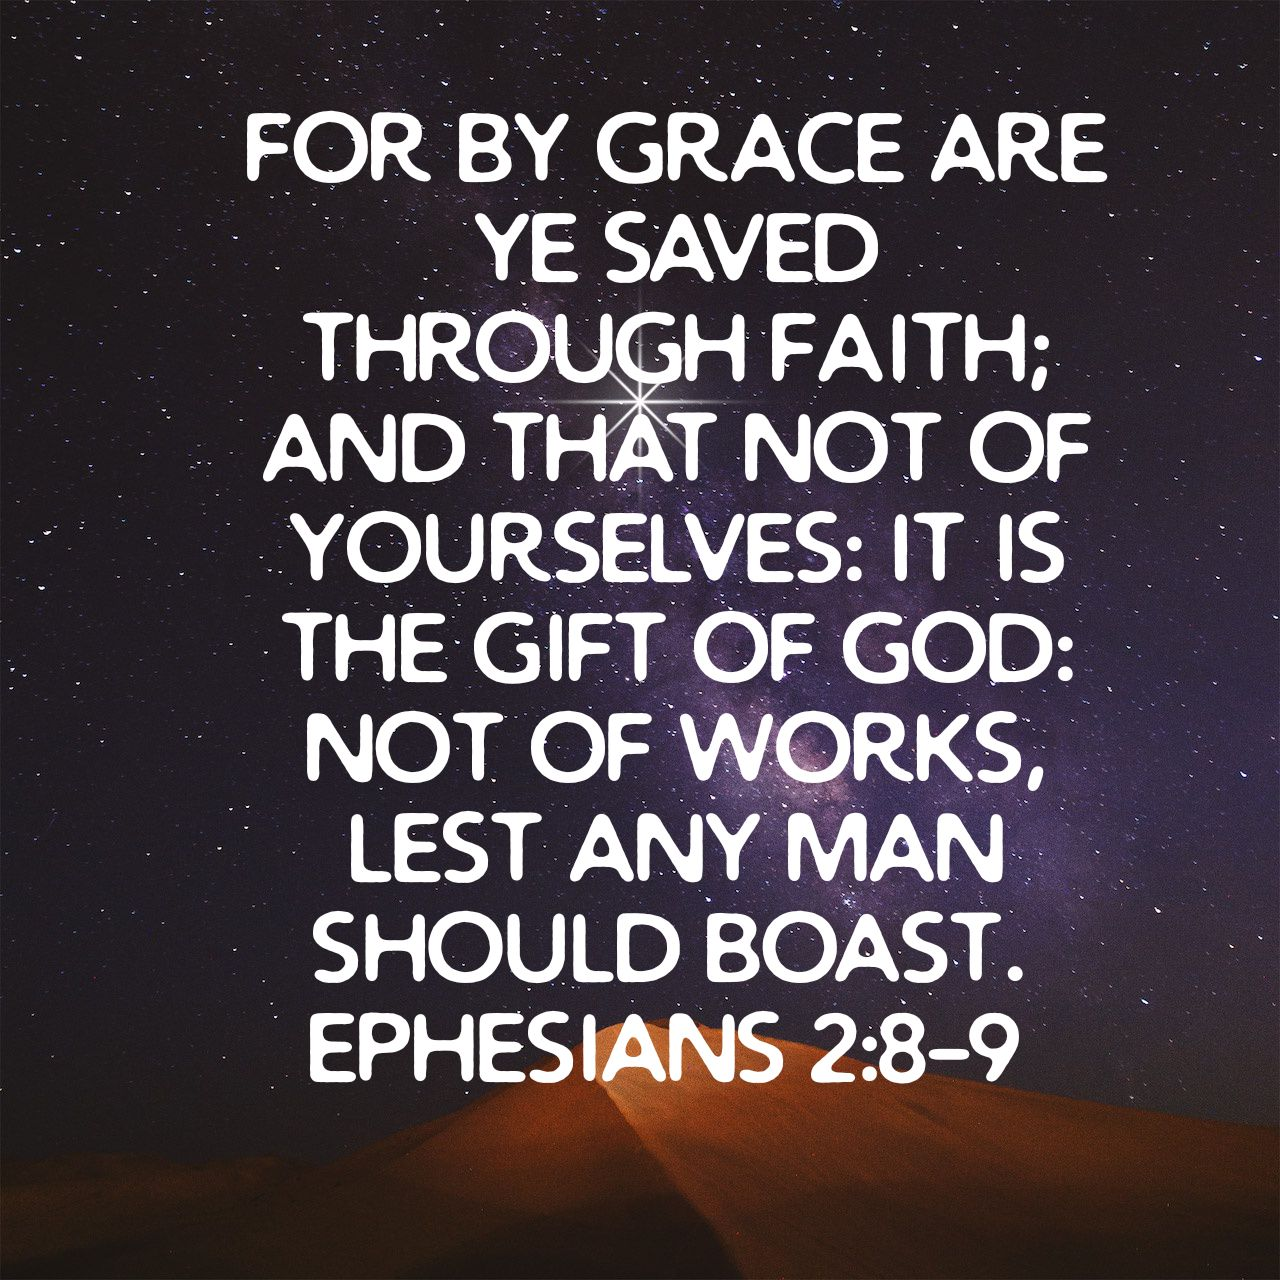 Grace means power to do God's will